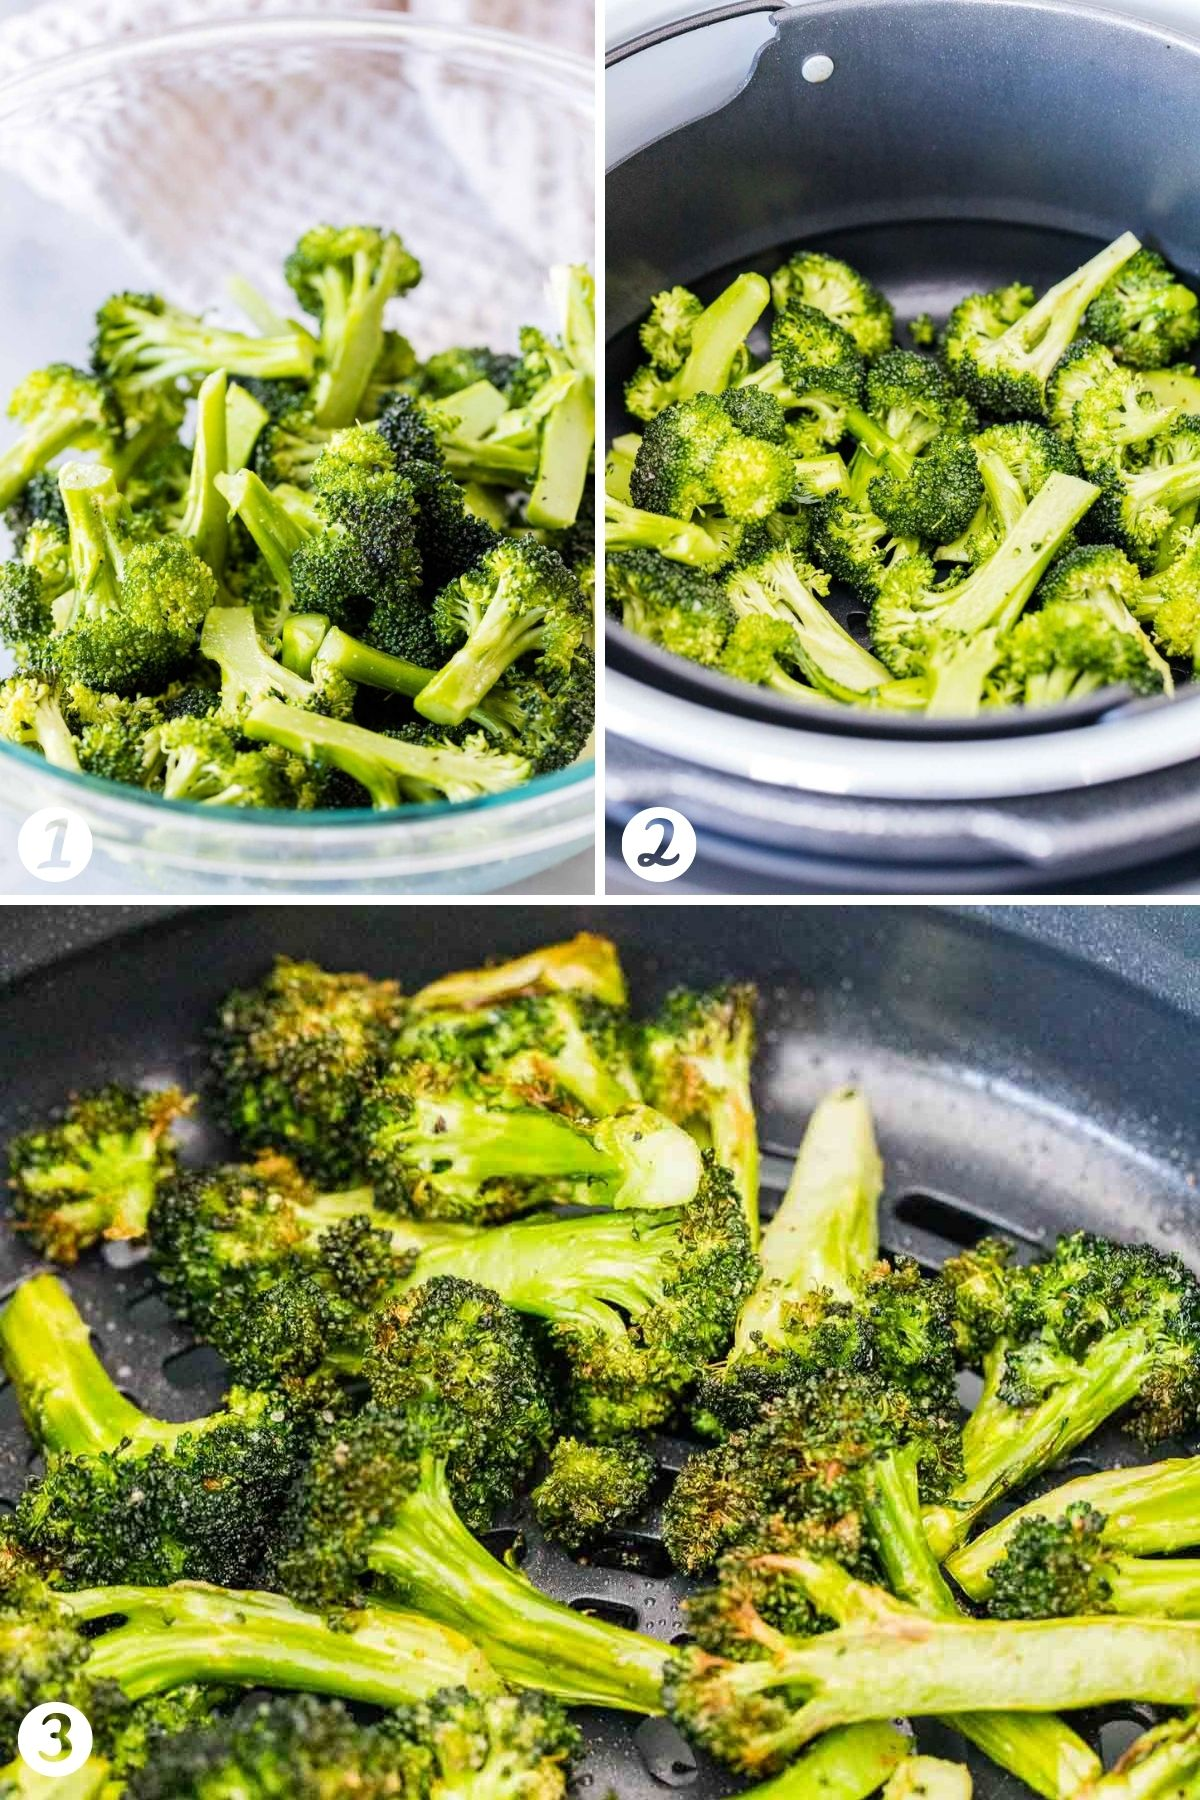 Steps for making broccoli in an Air Fryer